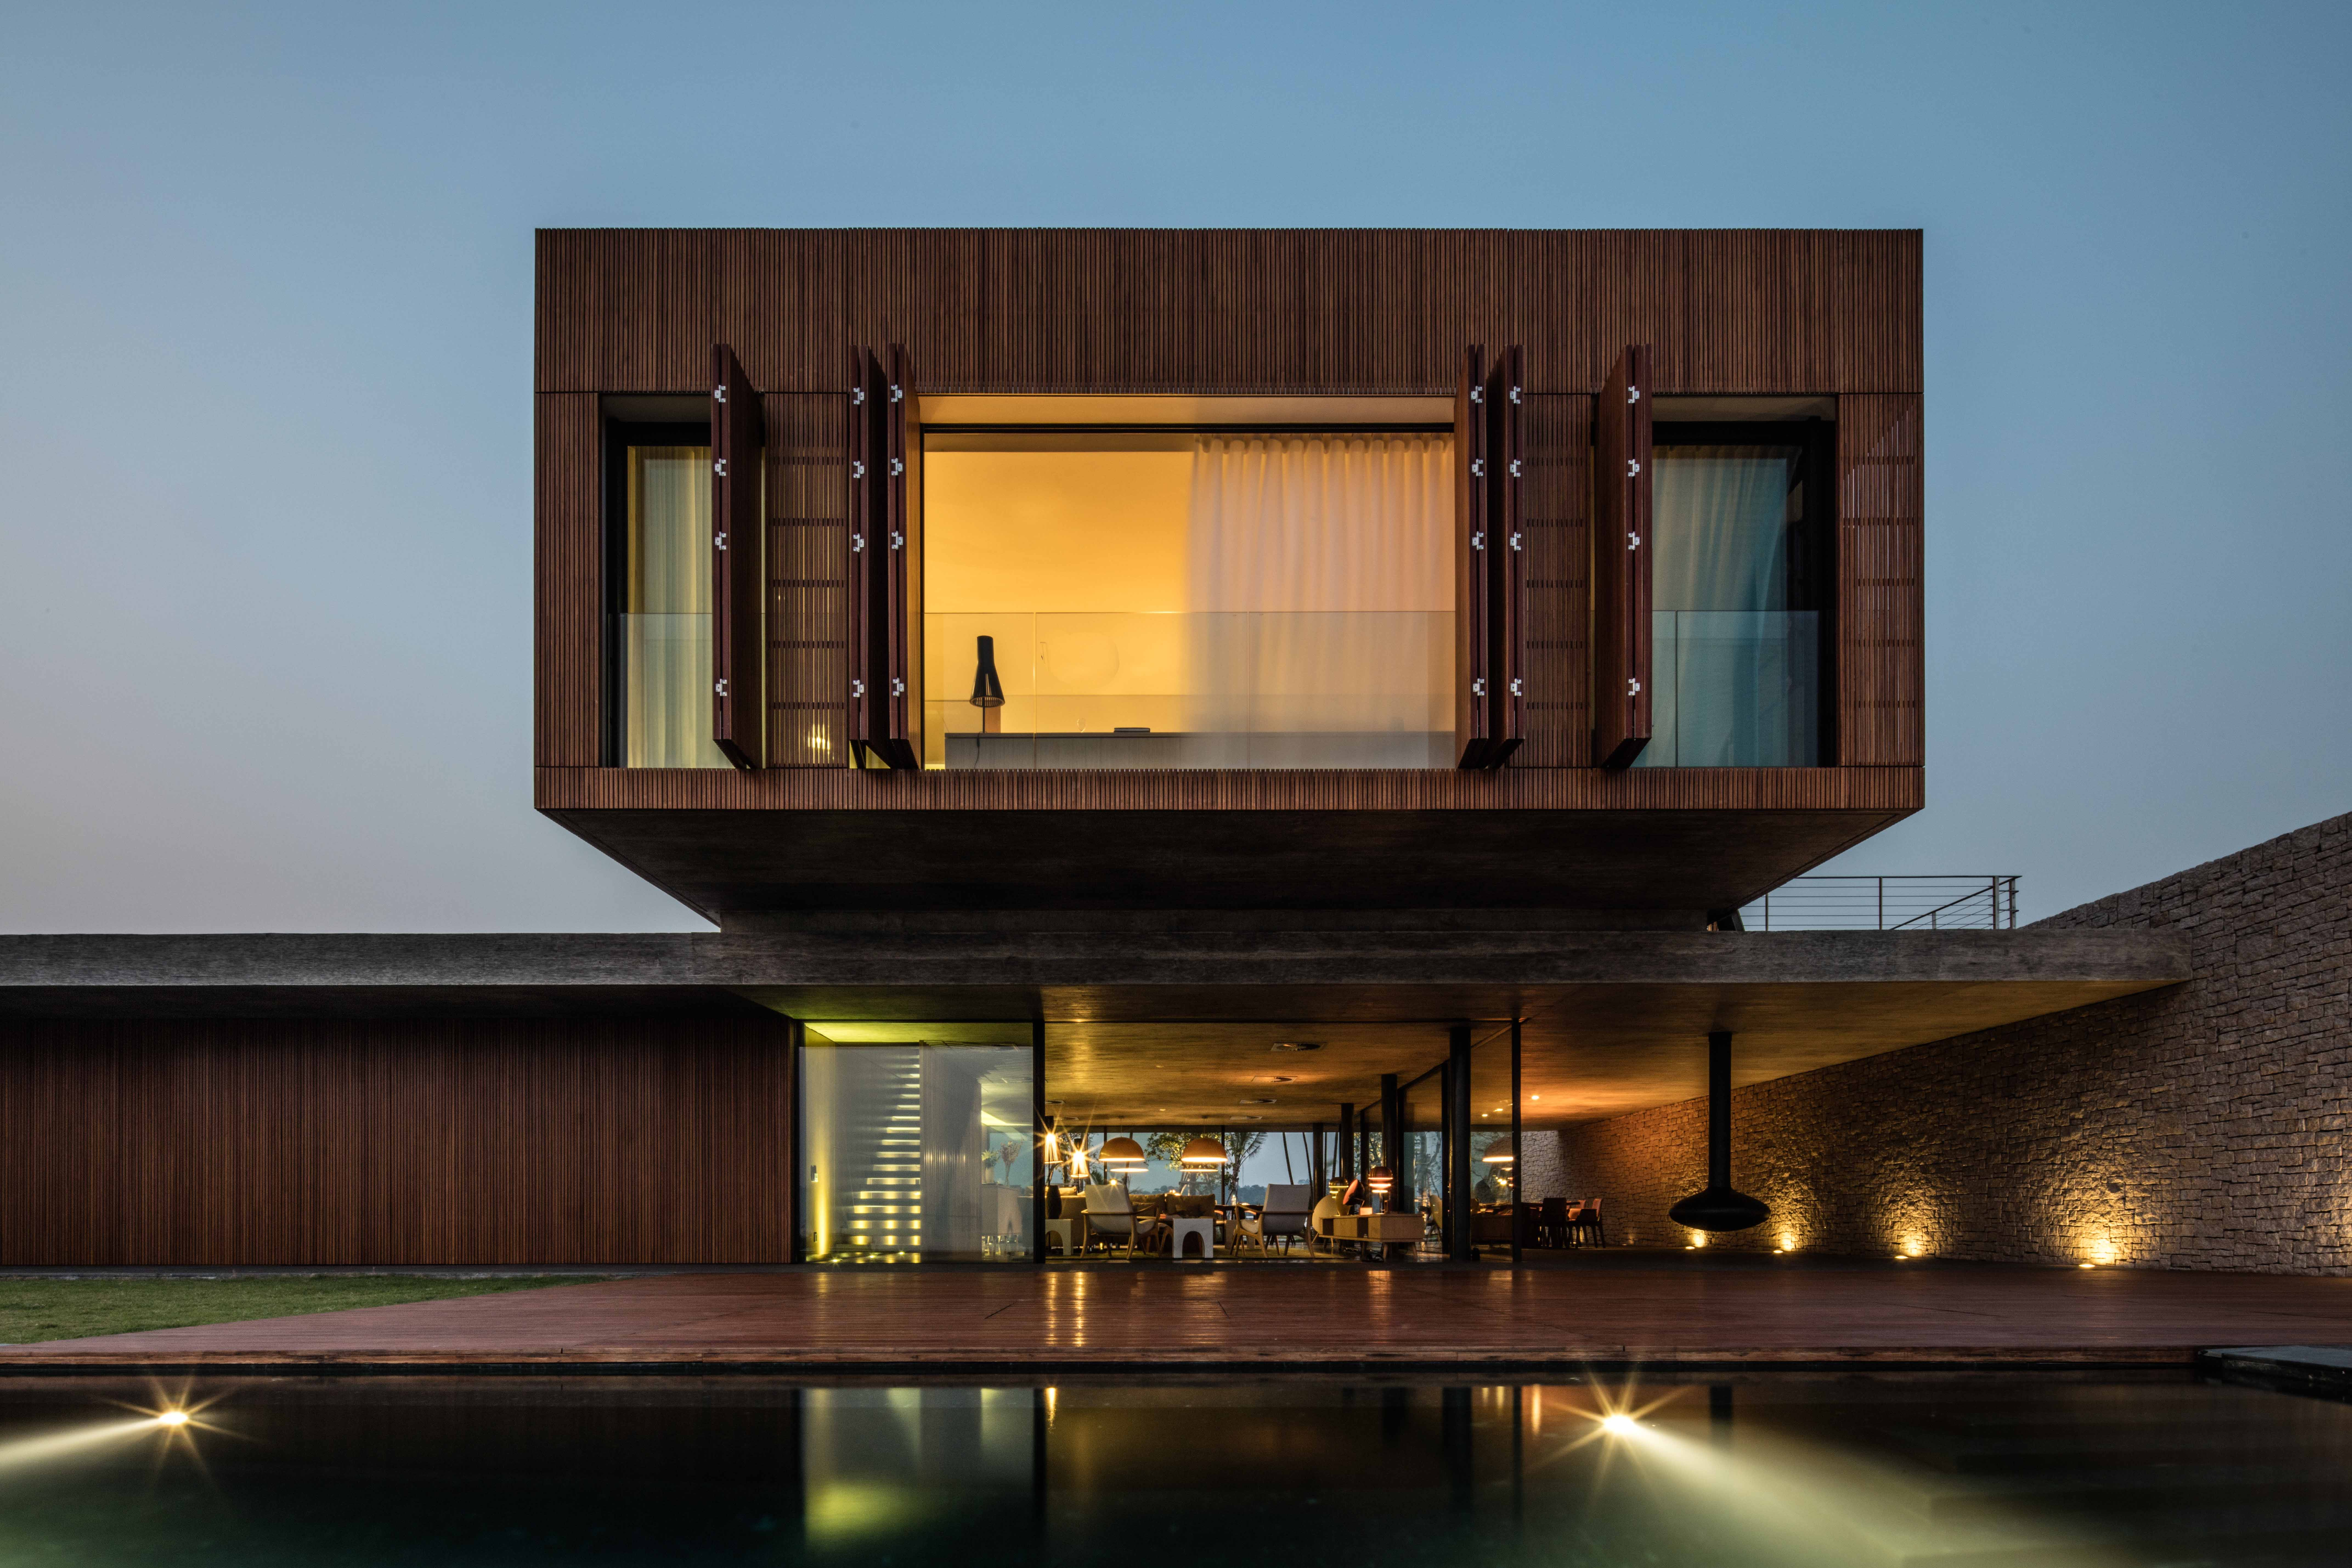 Villas feature cantilevered volumes and flexible living spaces